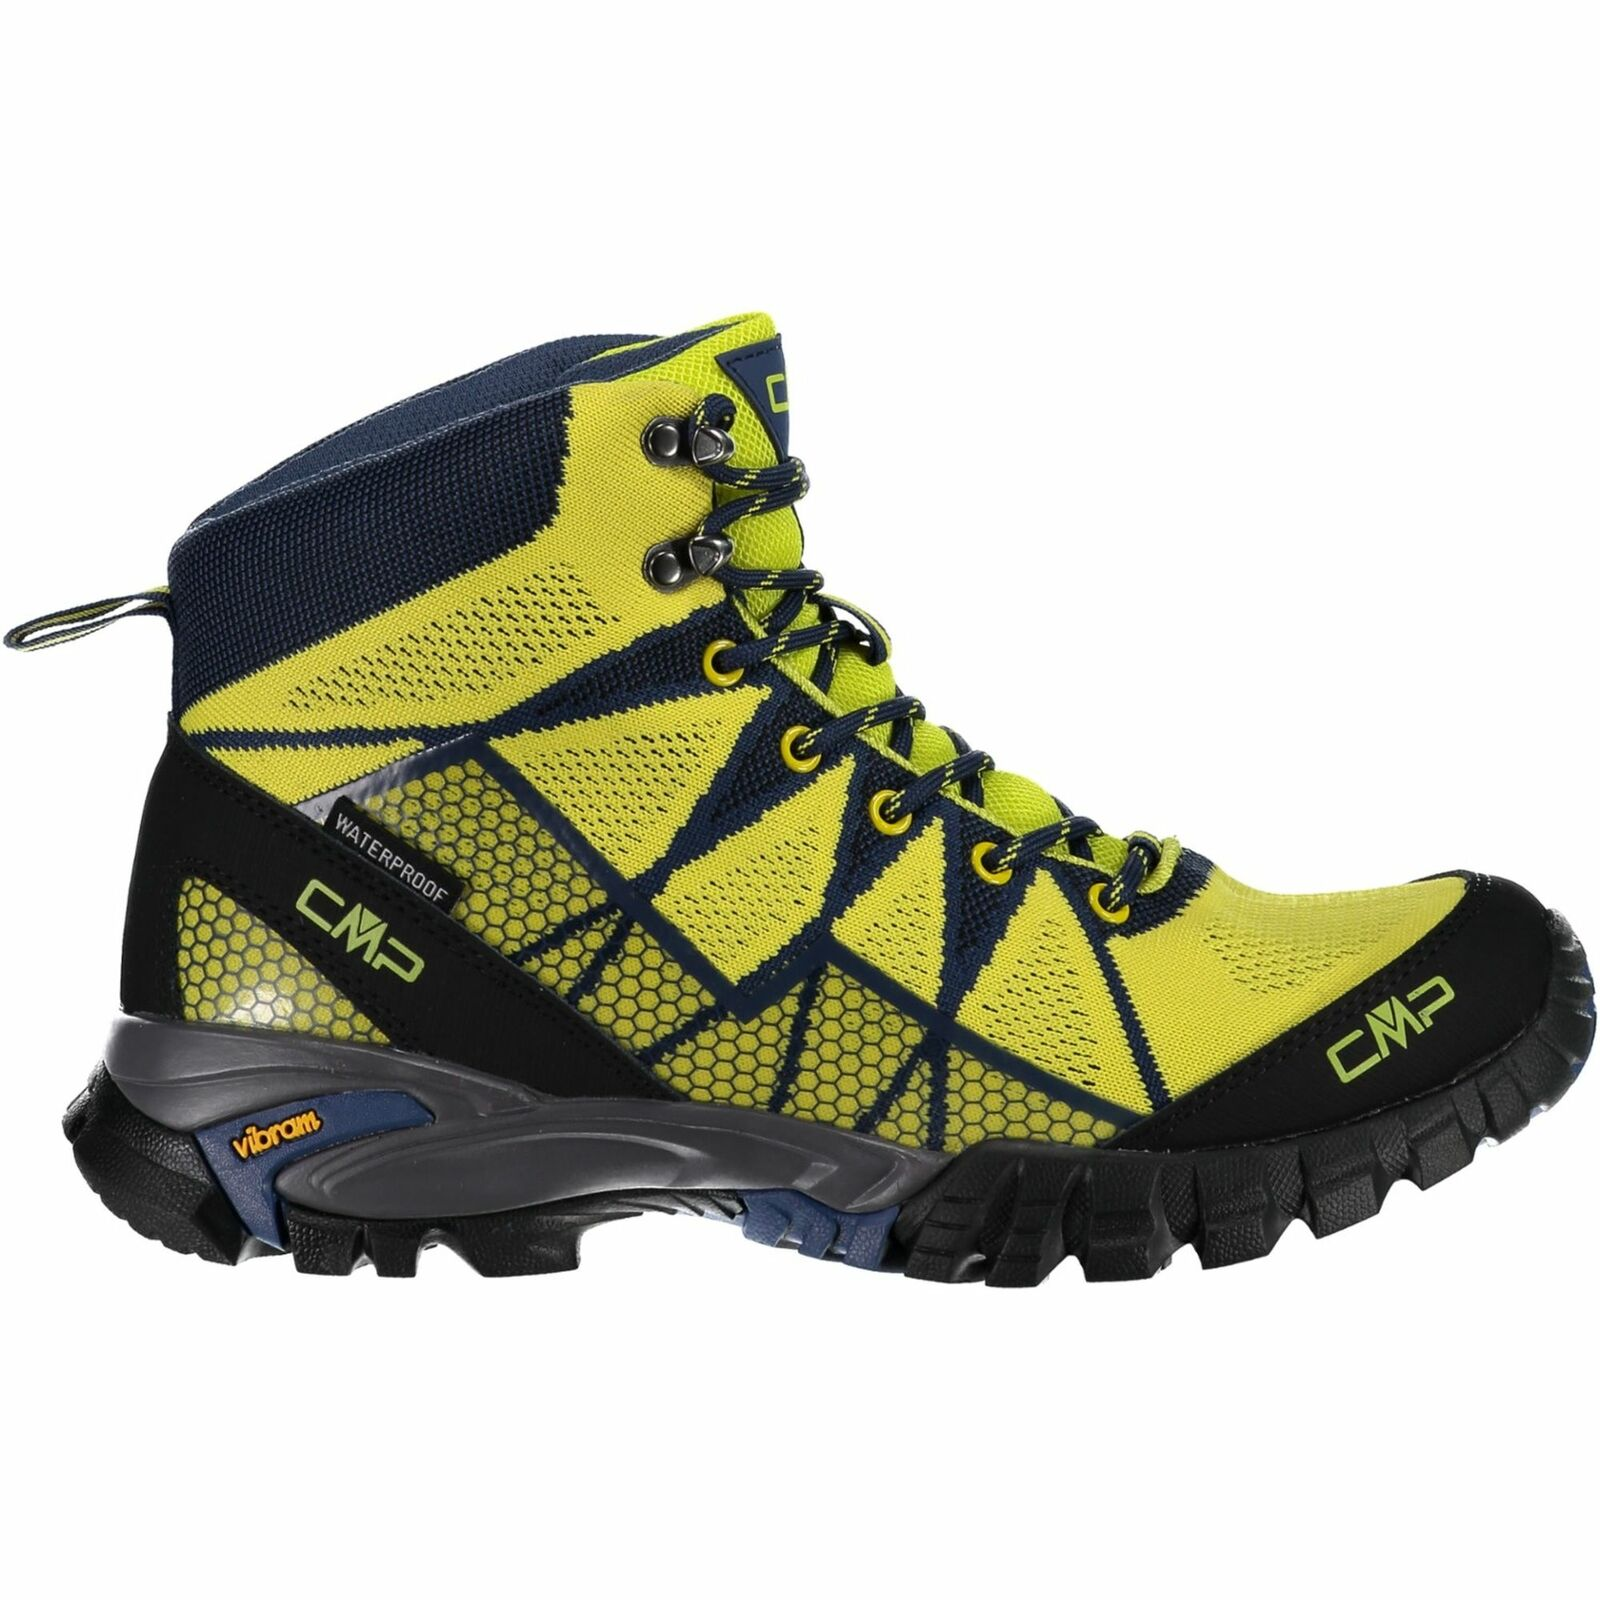 CMP Trekking shoes Outdoor Tauri  mid Wp Light Green Waterproof  cheap and top quality